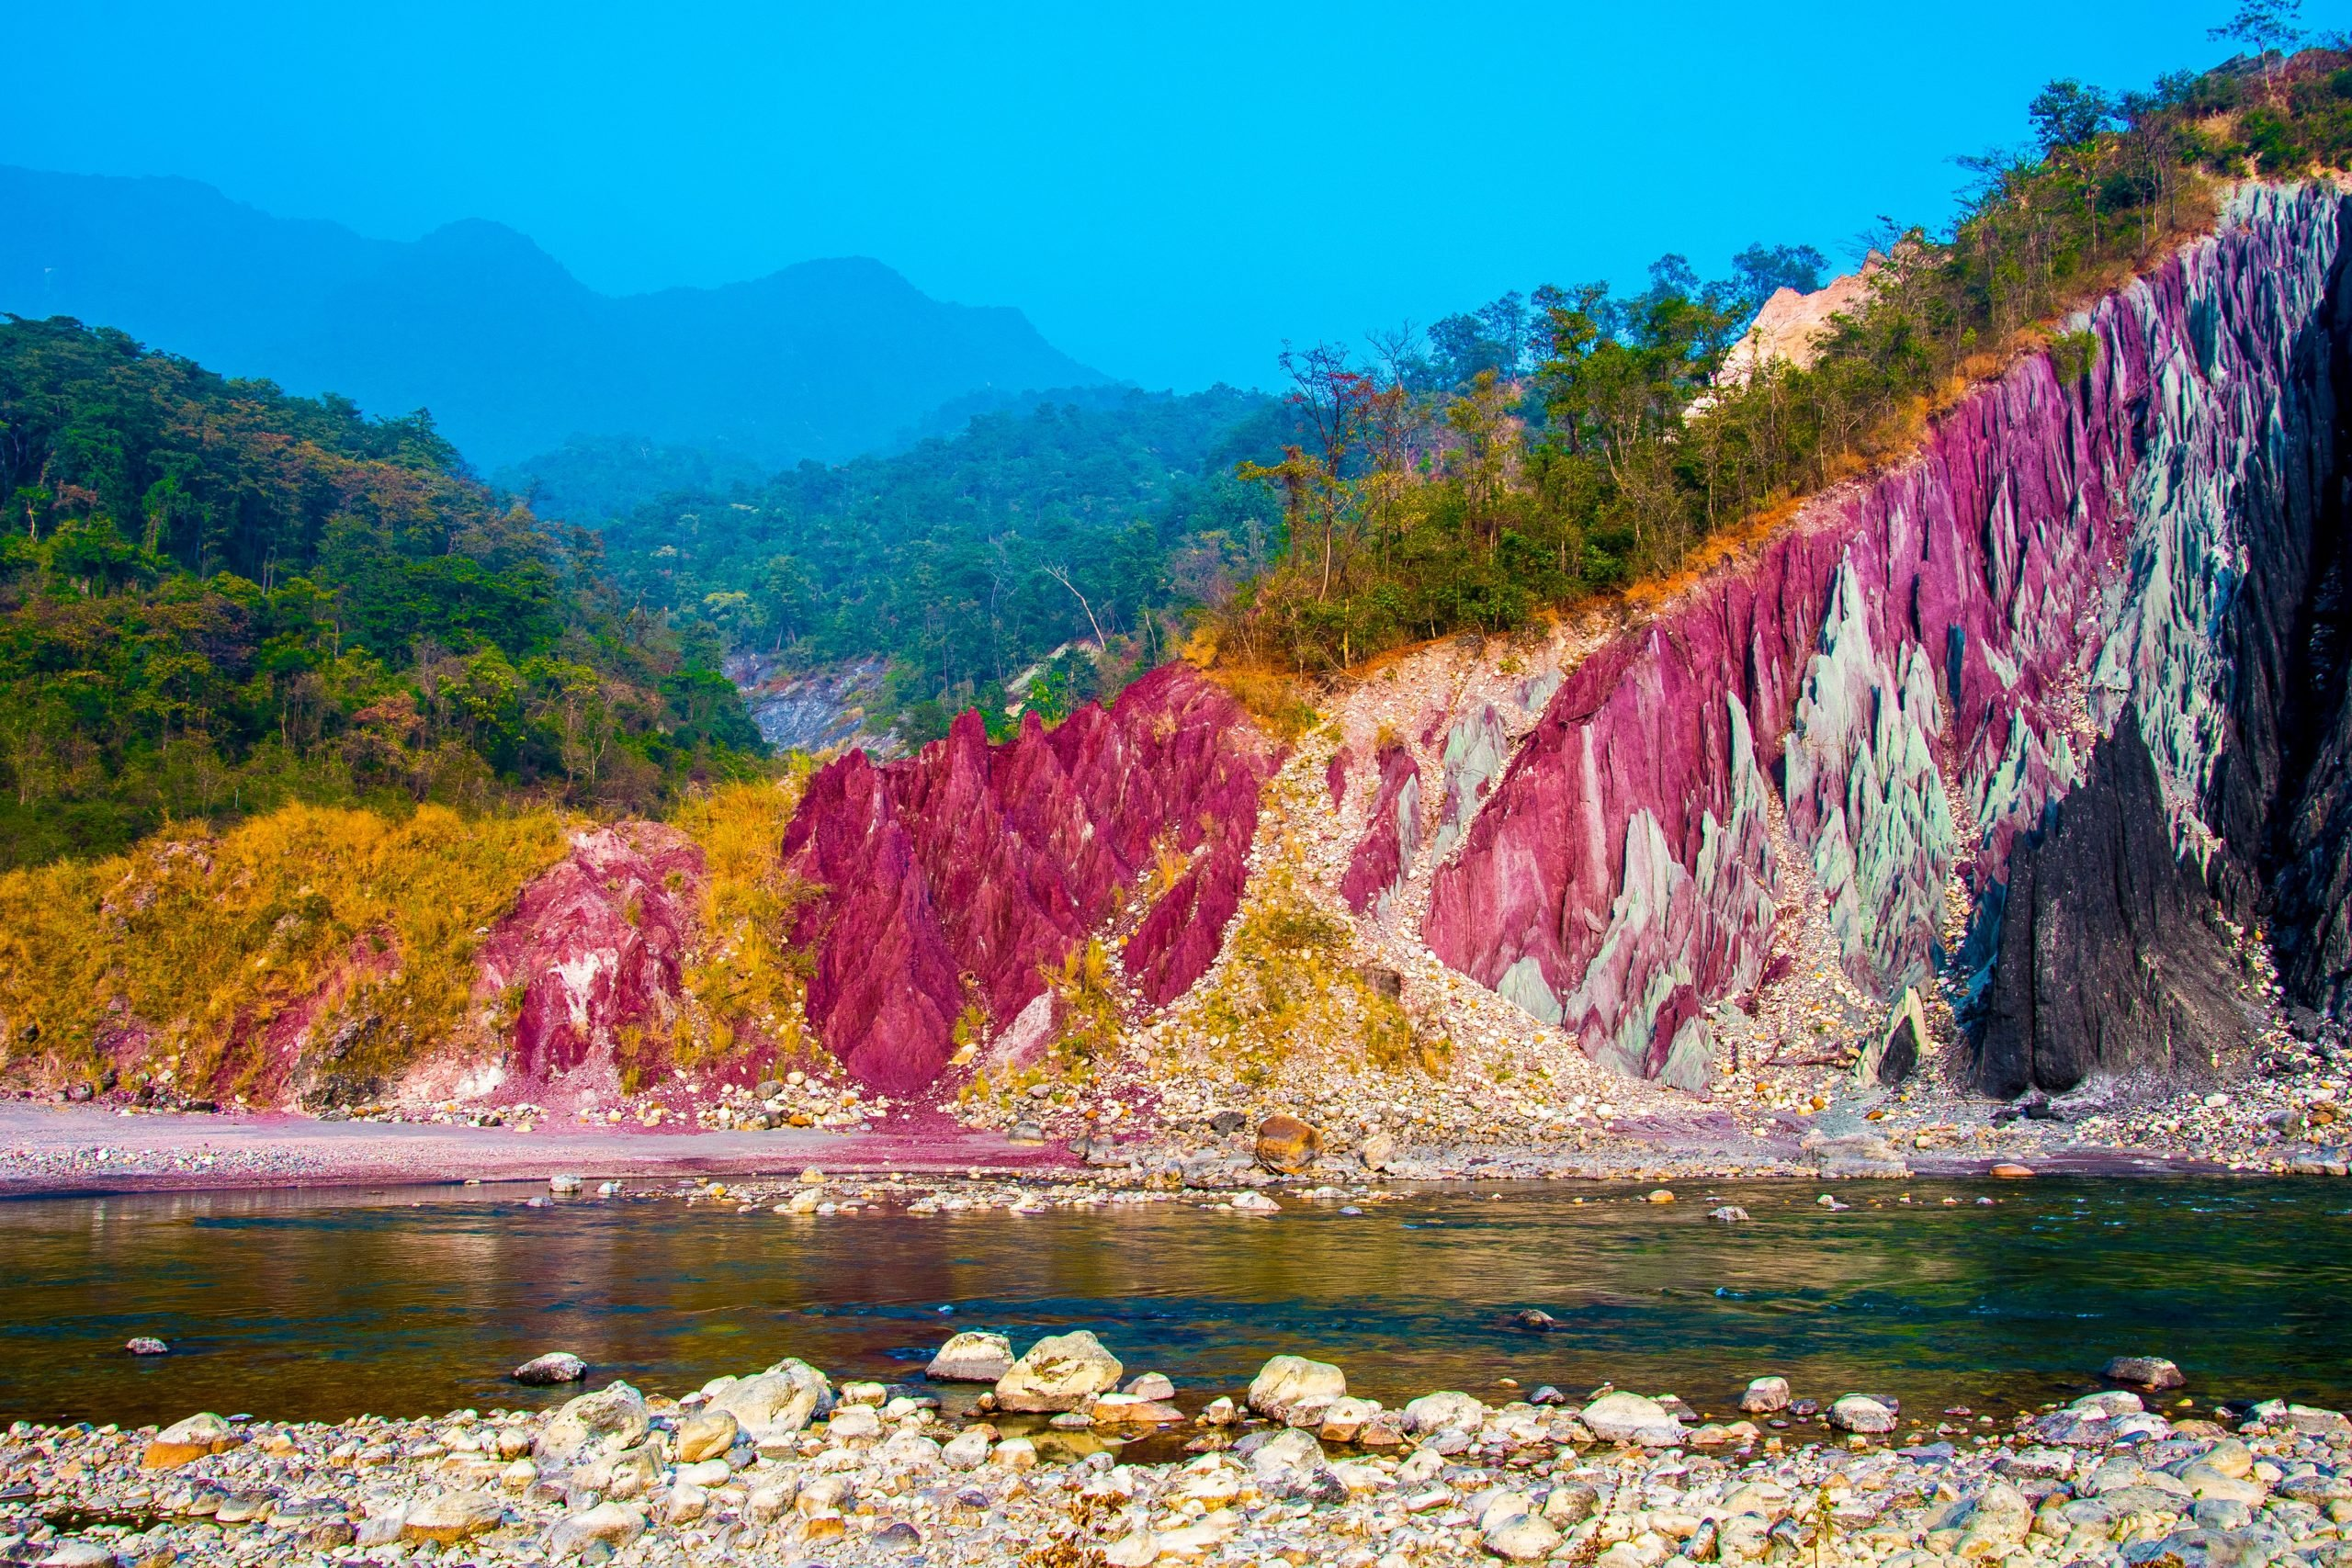 A river under colorful mountains